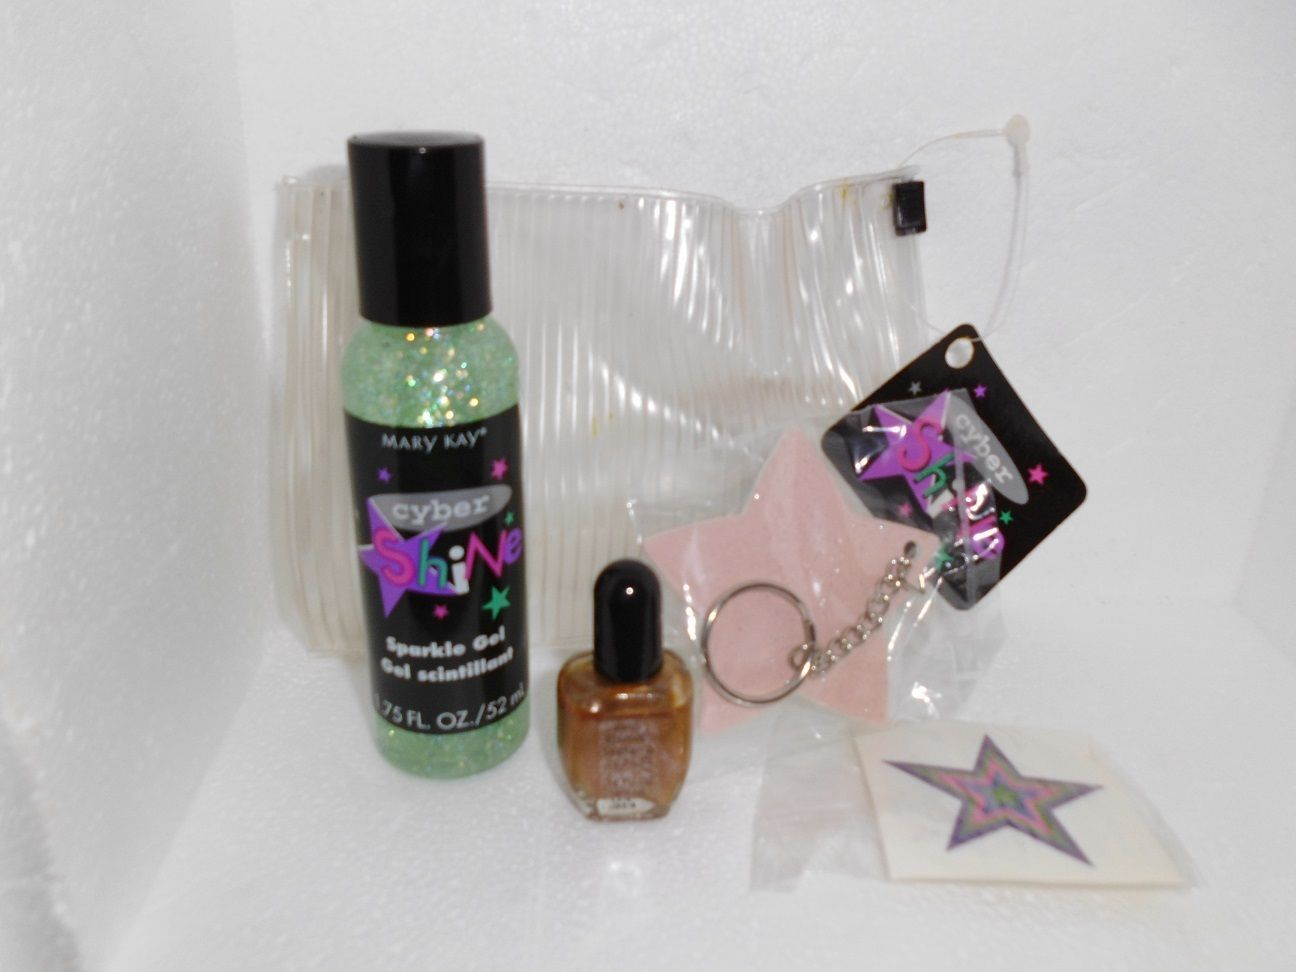 Mary Kay Cyber Shine Gift Set-Sparkle and 50 similar items